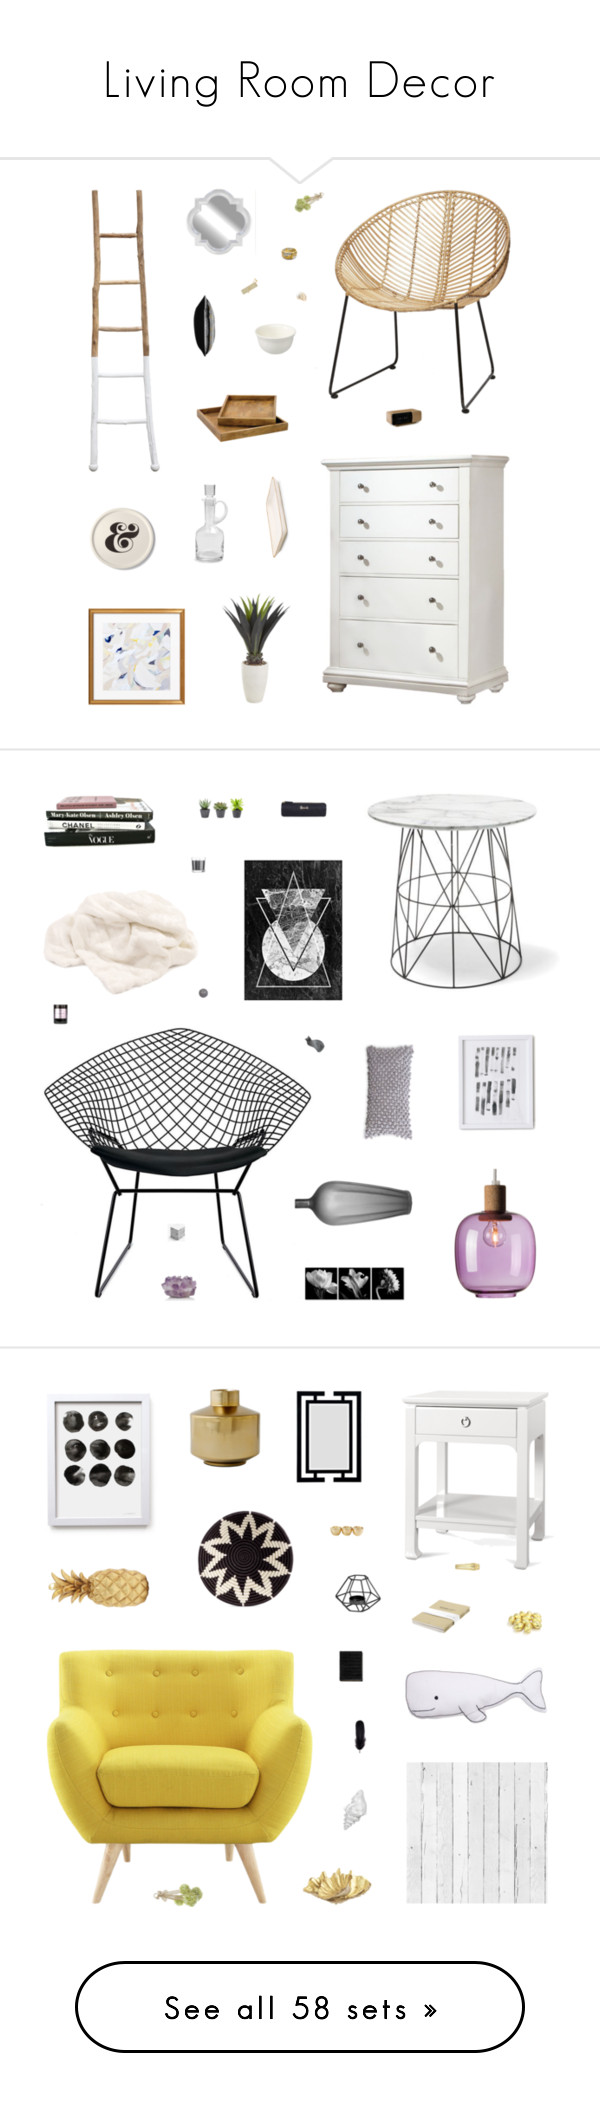 """""""Living Room Decor"""" by belenloperfido ❤ liked on Polyvore featuring interior, interiors, interior design, home, home decor, interior decorating, Dot & Bo, Greyson Living, Kate Spade and Pier 1 Imports"""